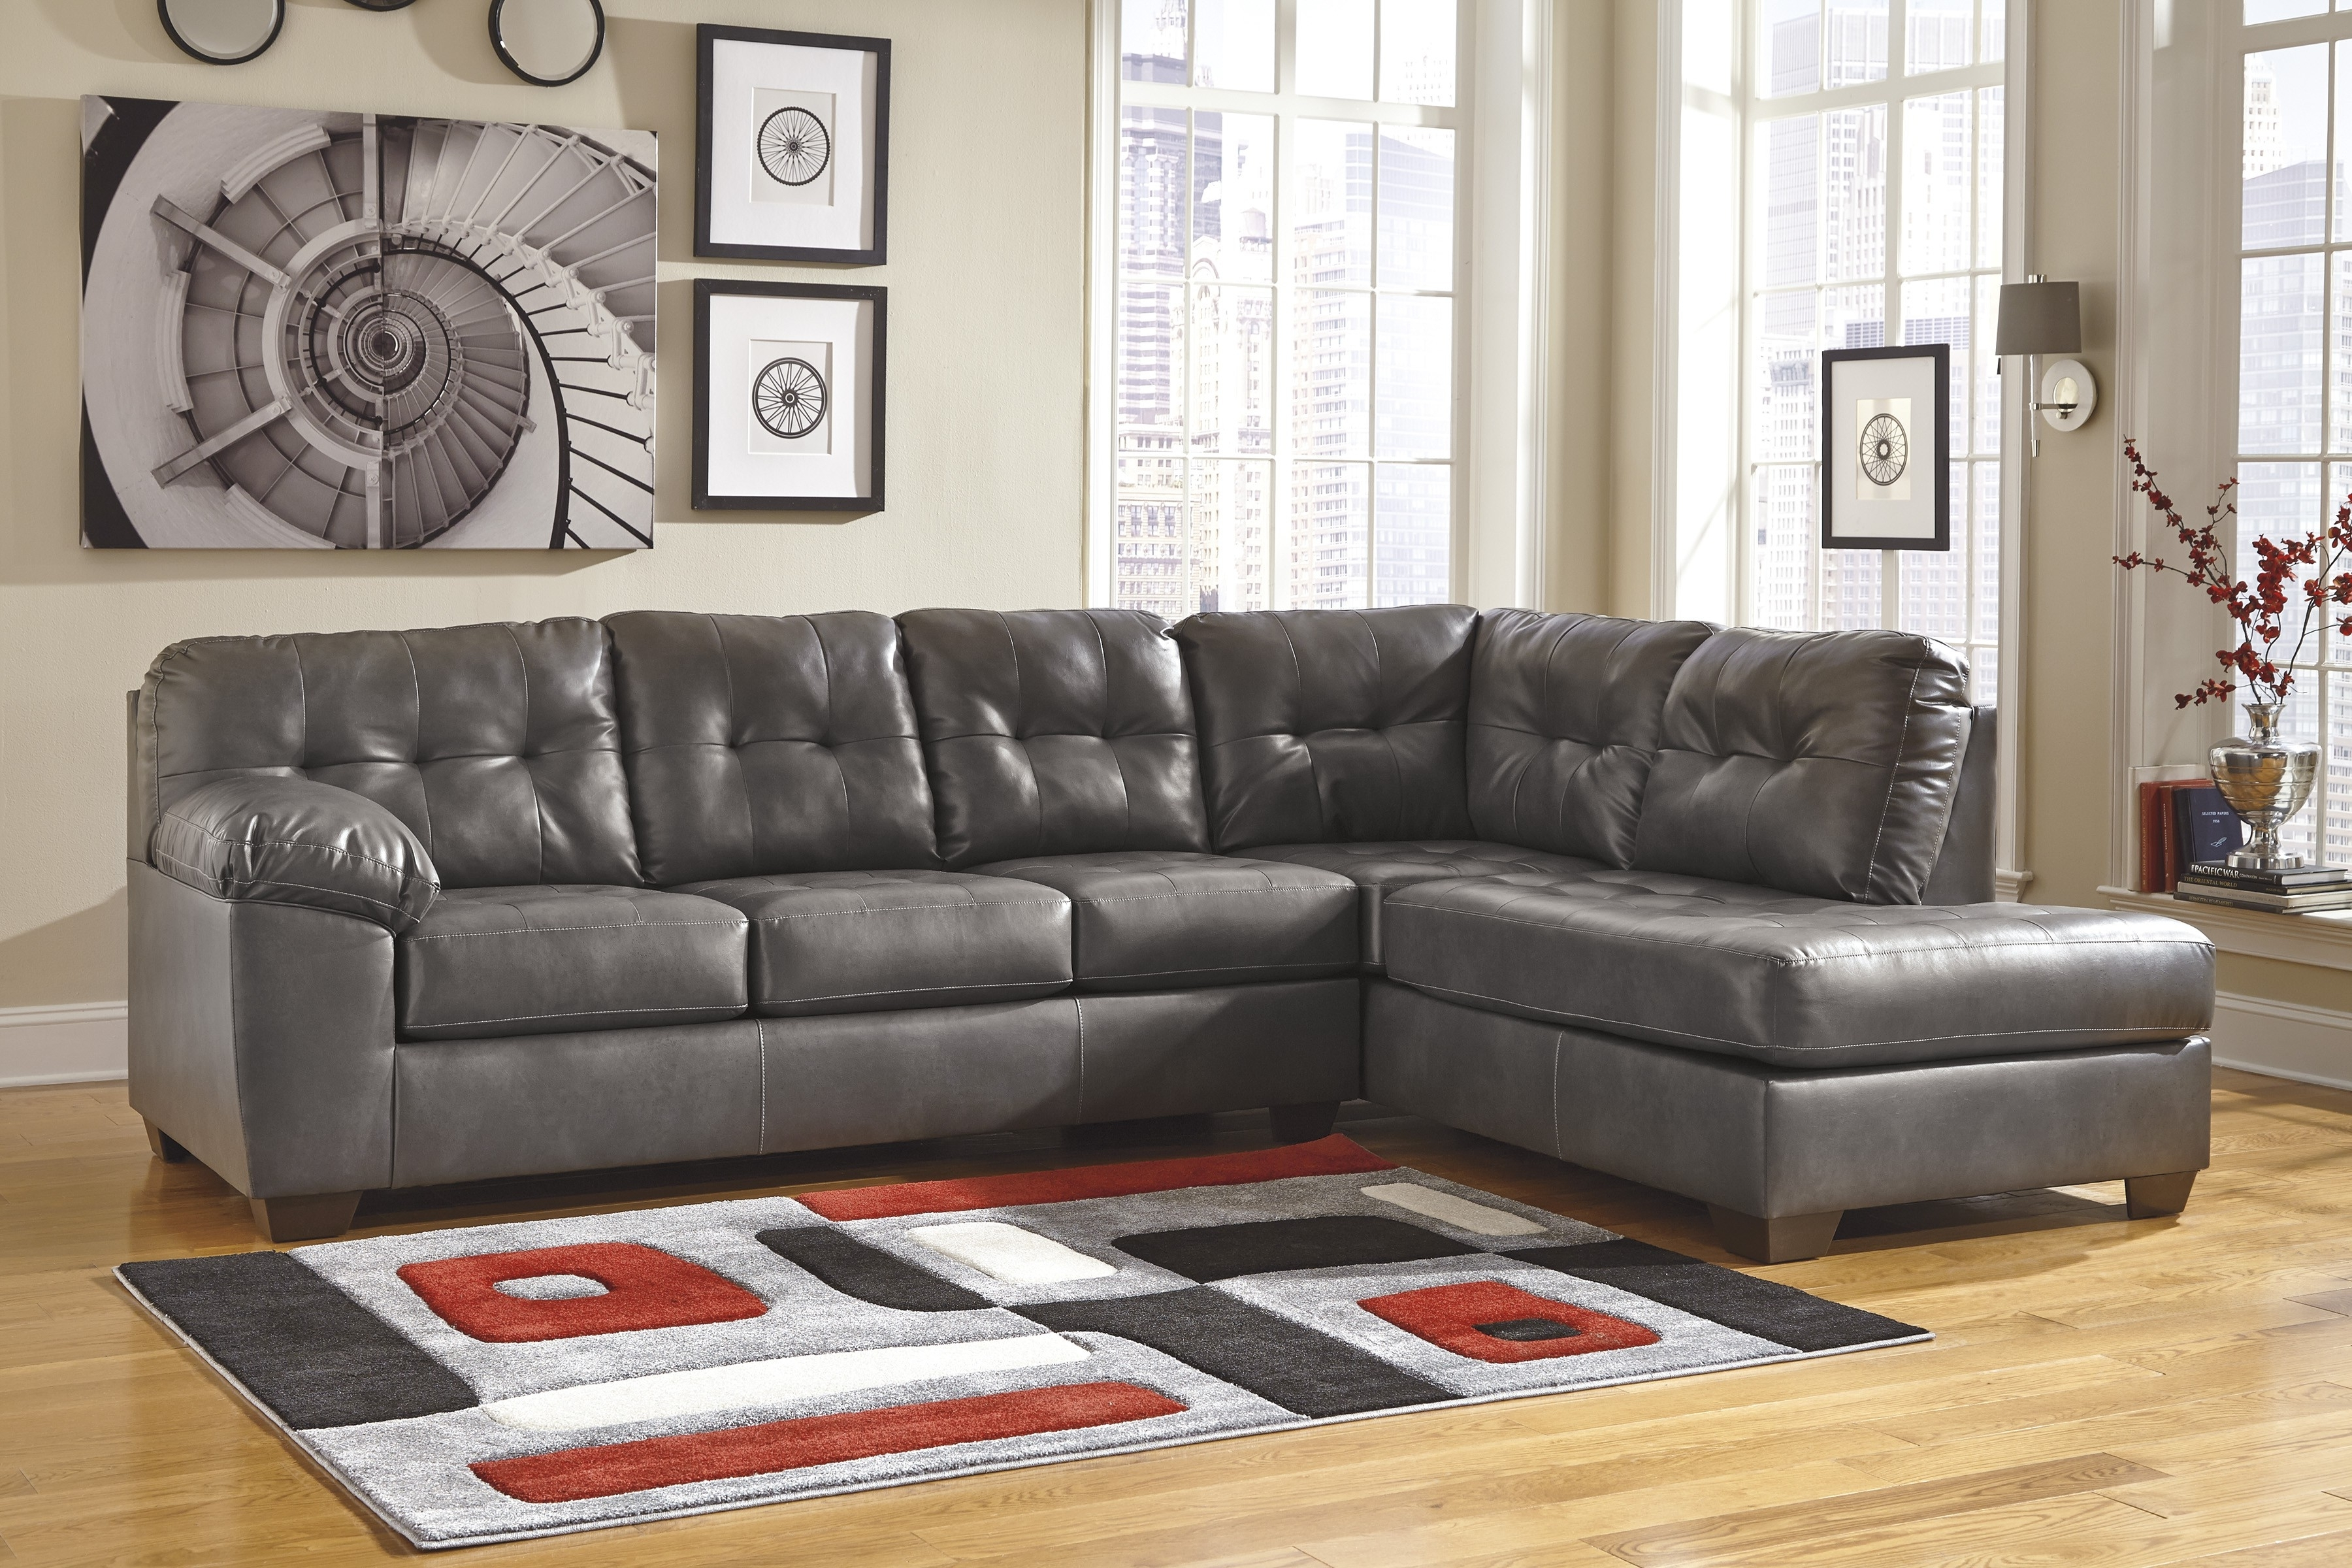 Popular Buy Alliston Durablend® – Gray Laf Corner Chaise With Raf Sofa In Raf Chaises (View 13 of 15)